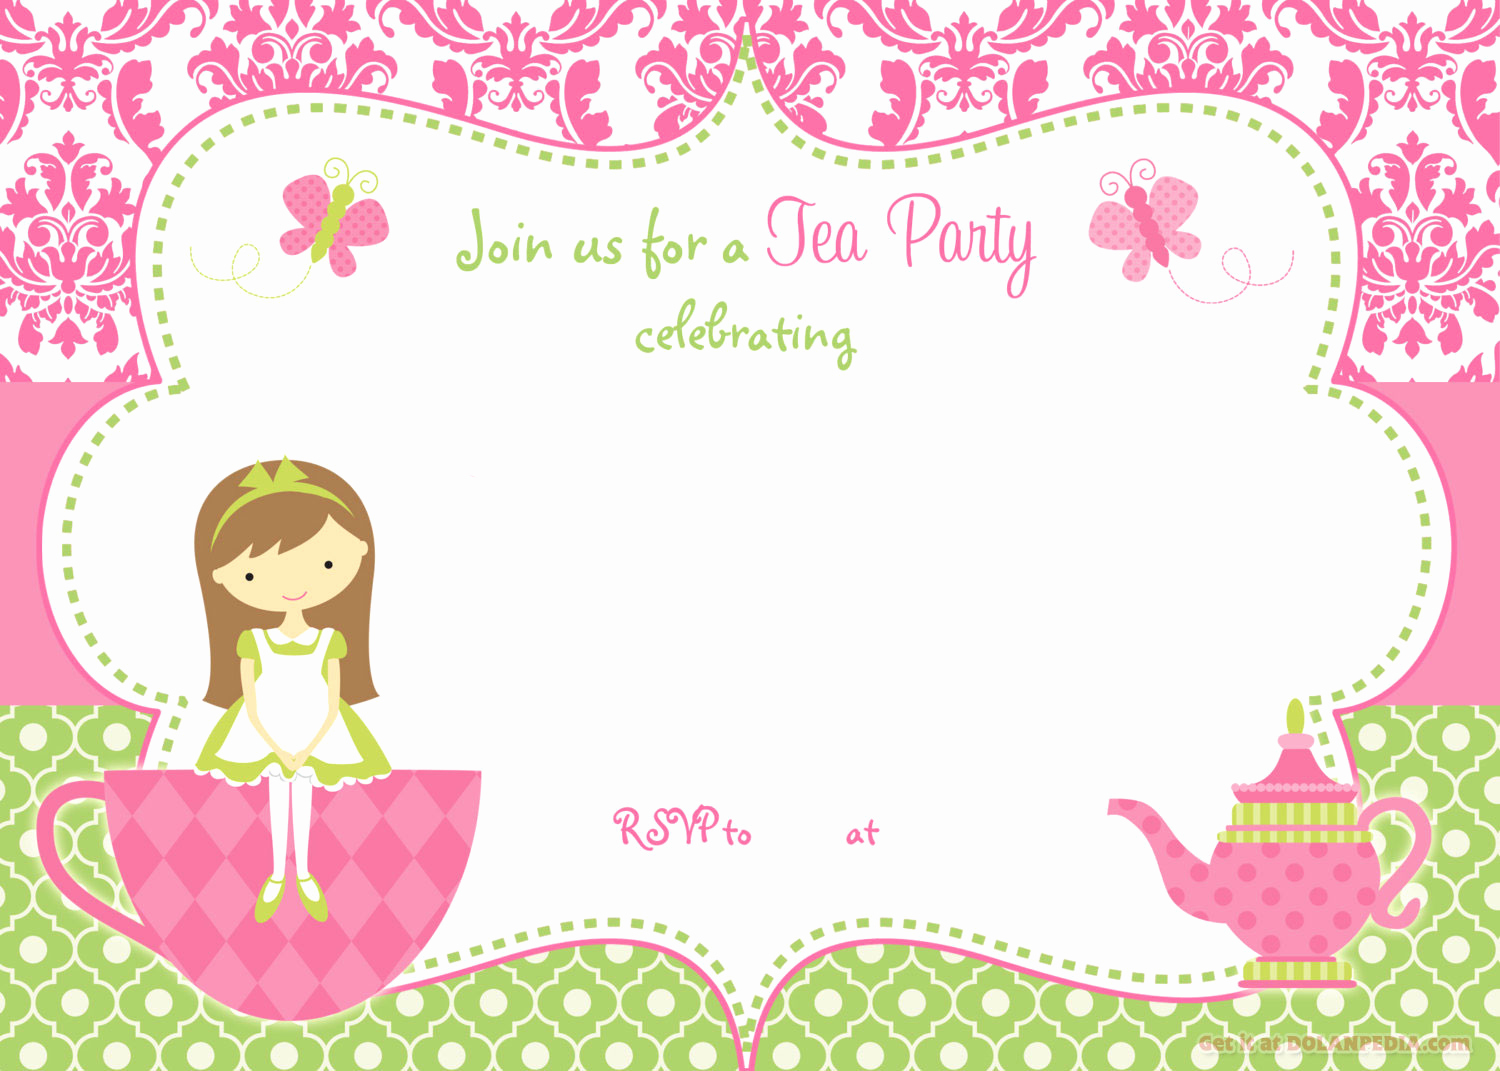 Tea Party Invitation Template Word Best Of Free Printable Tea Party Invitation Template for Girl